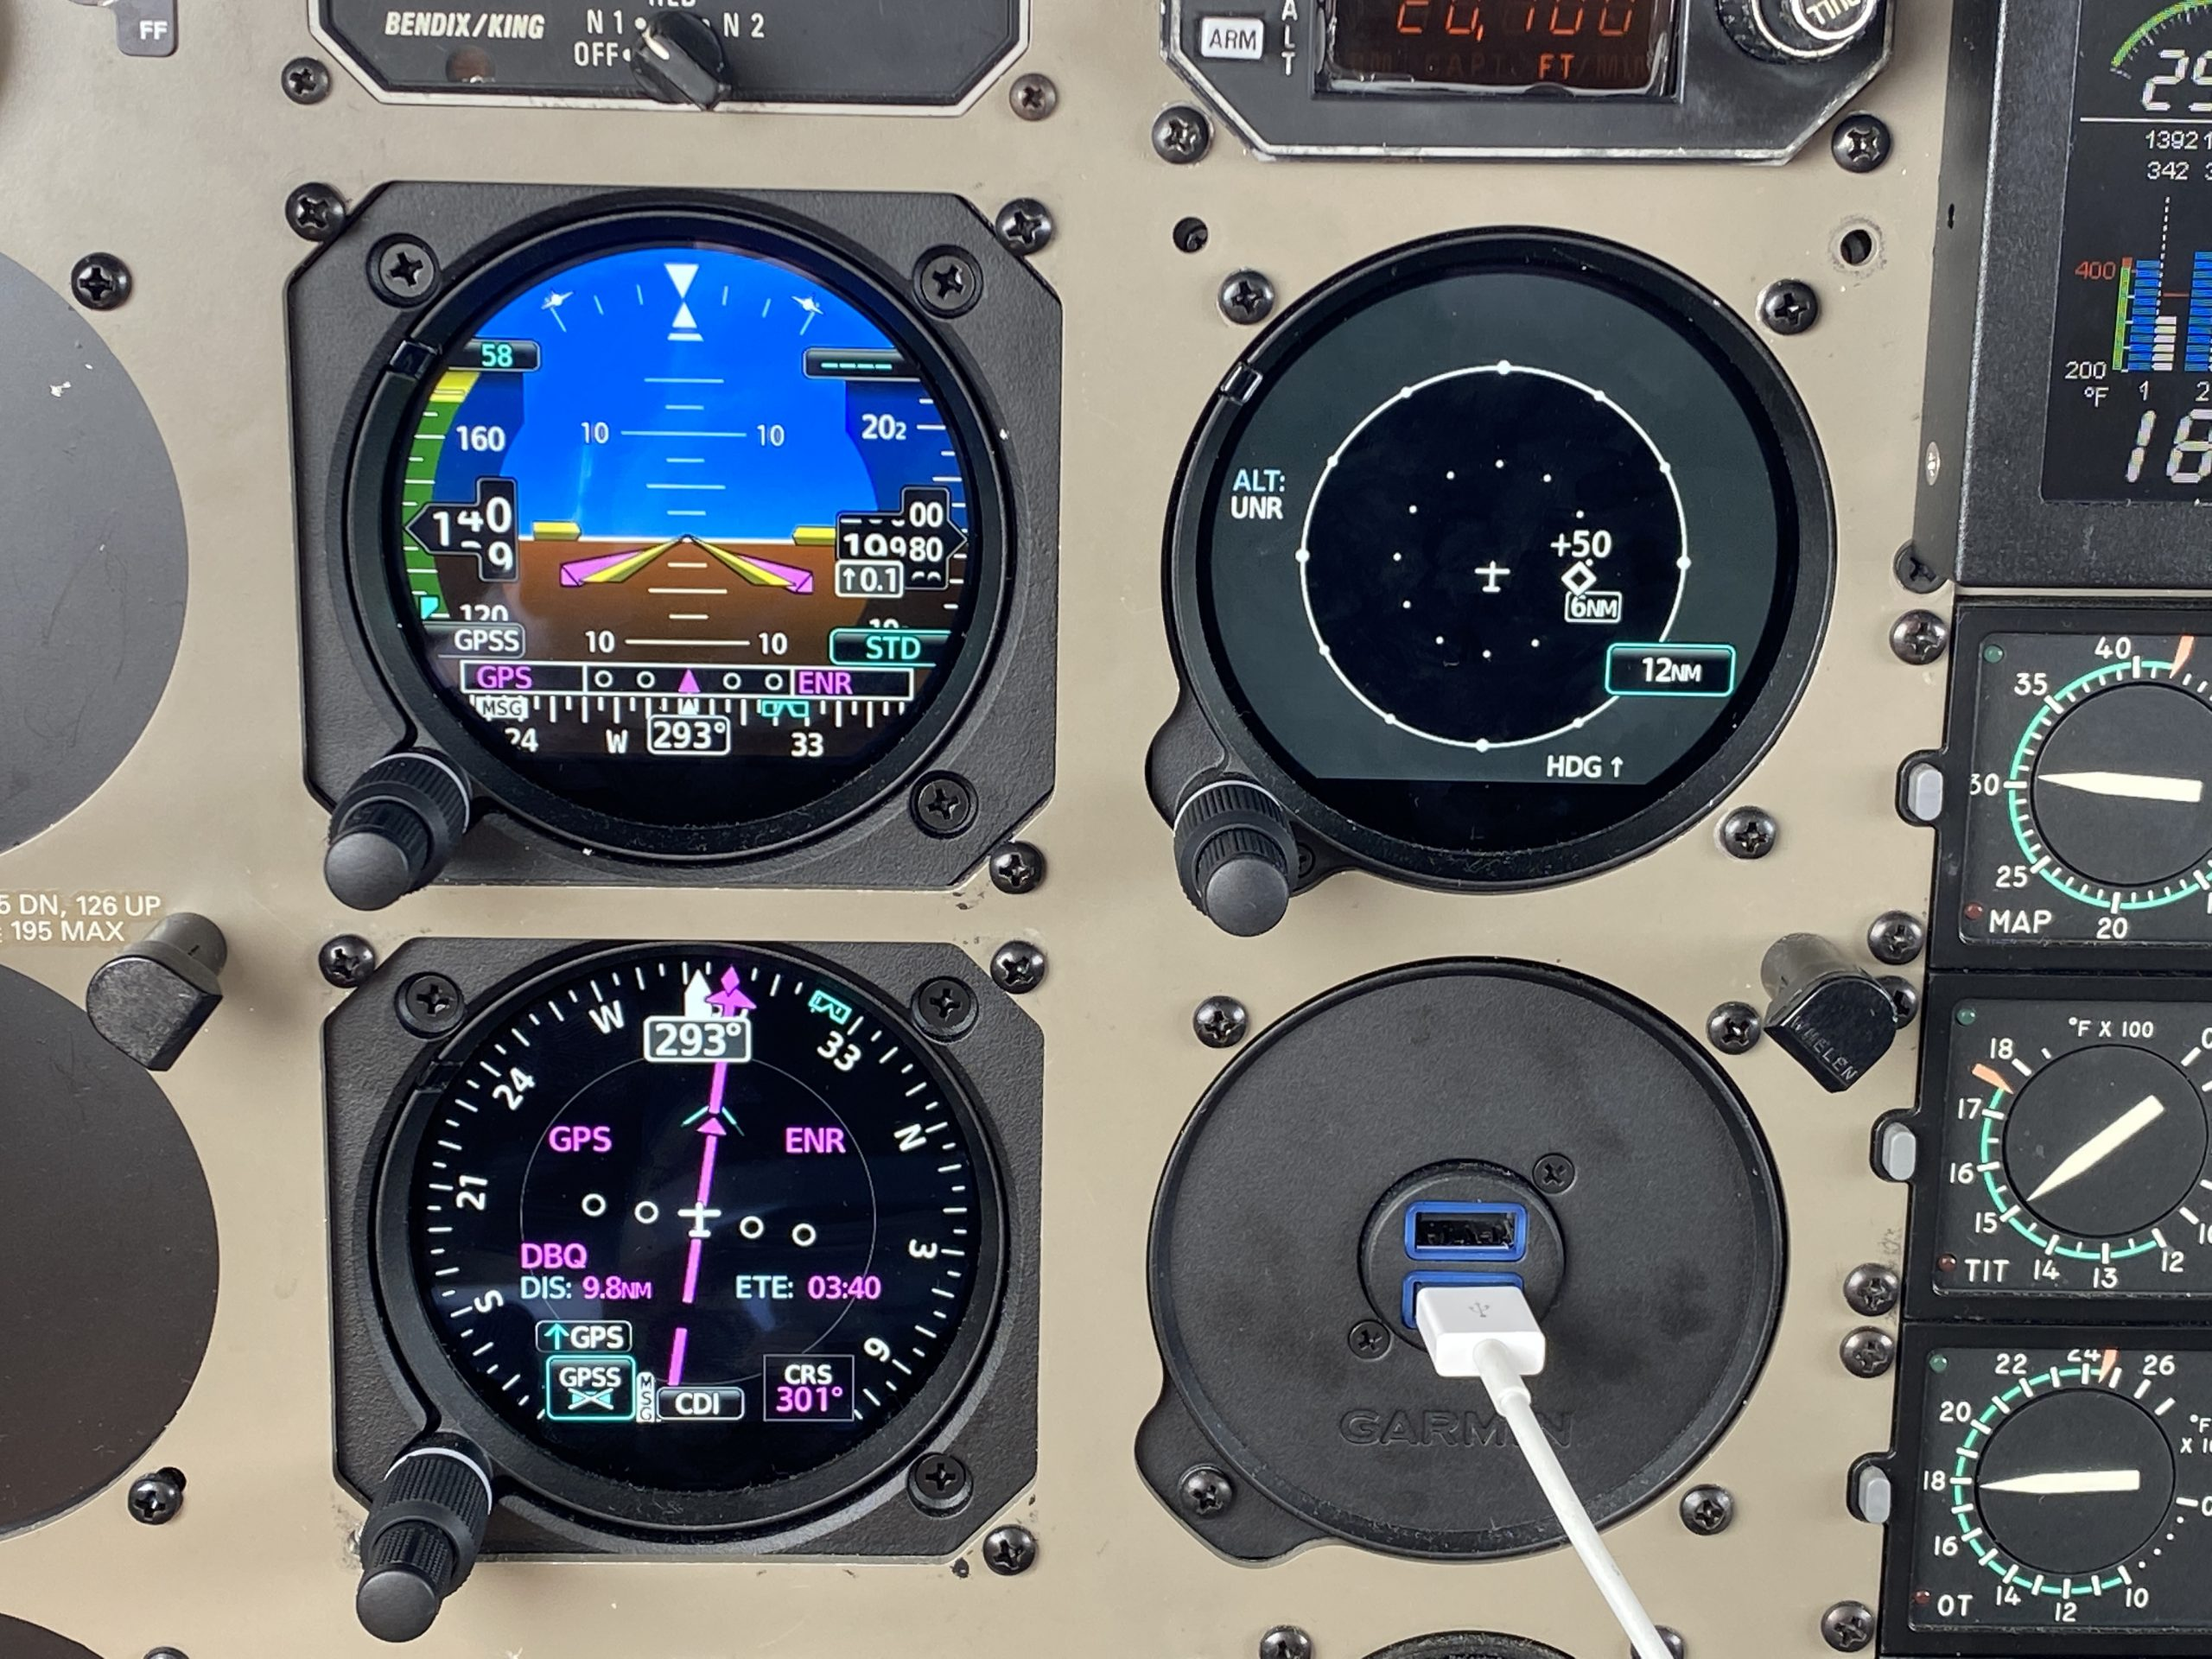 Garmin GI 275 Finds a Home in the PA-46